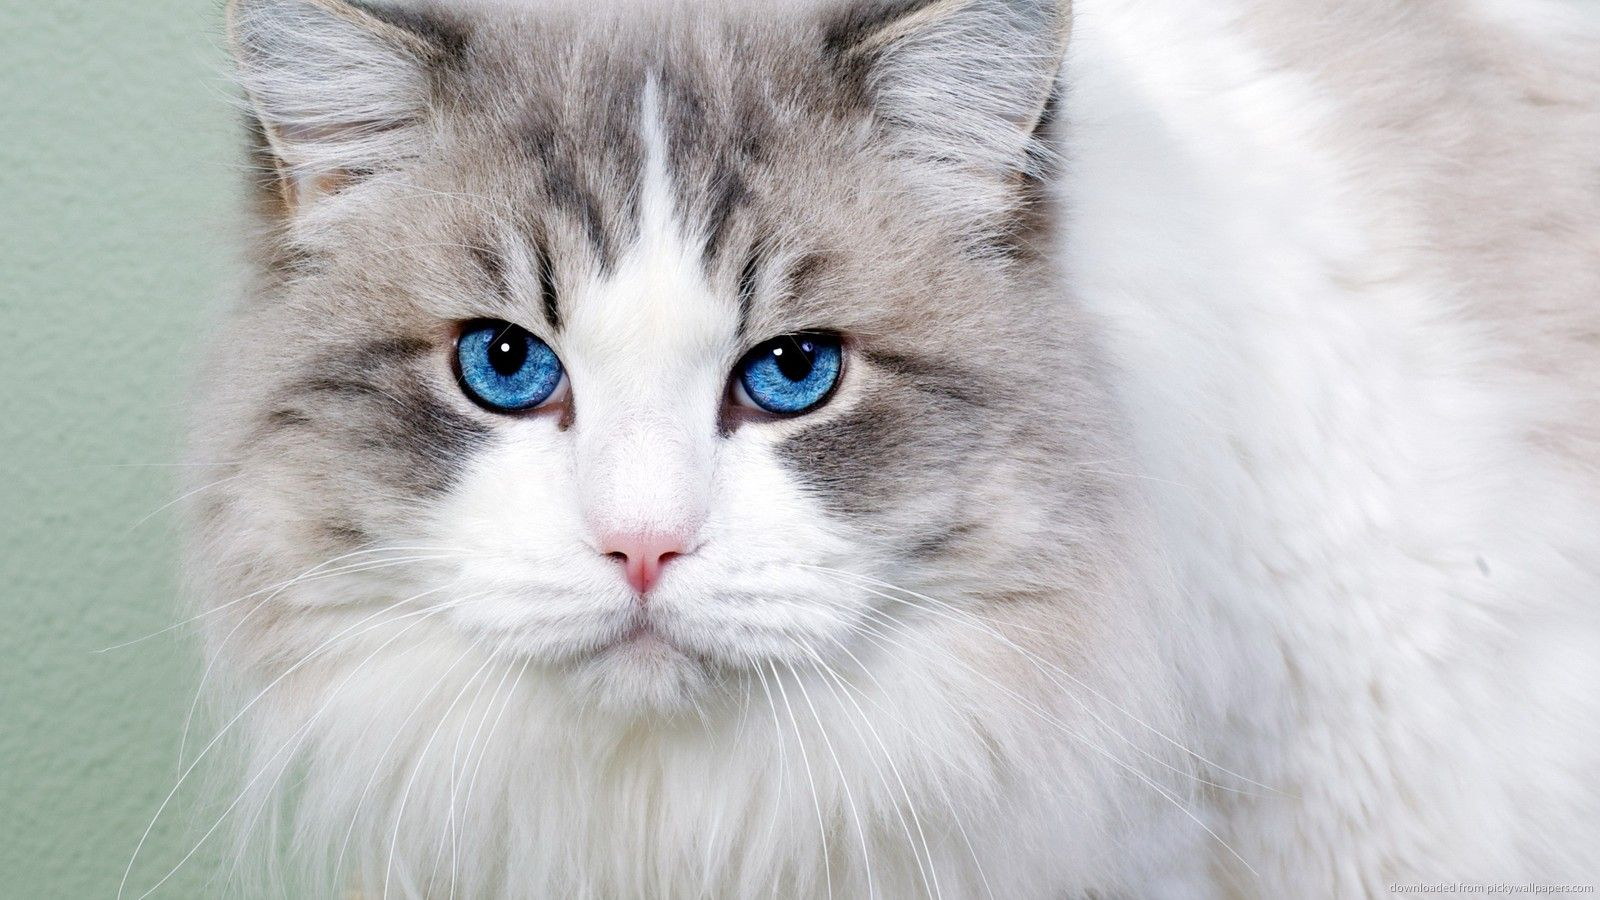 Gray And White Kittens With Blue Eyes Cat with blue eyes